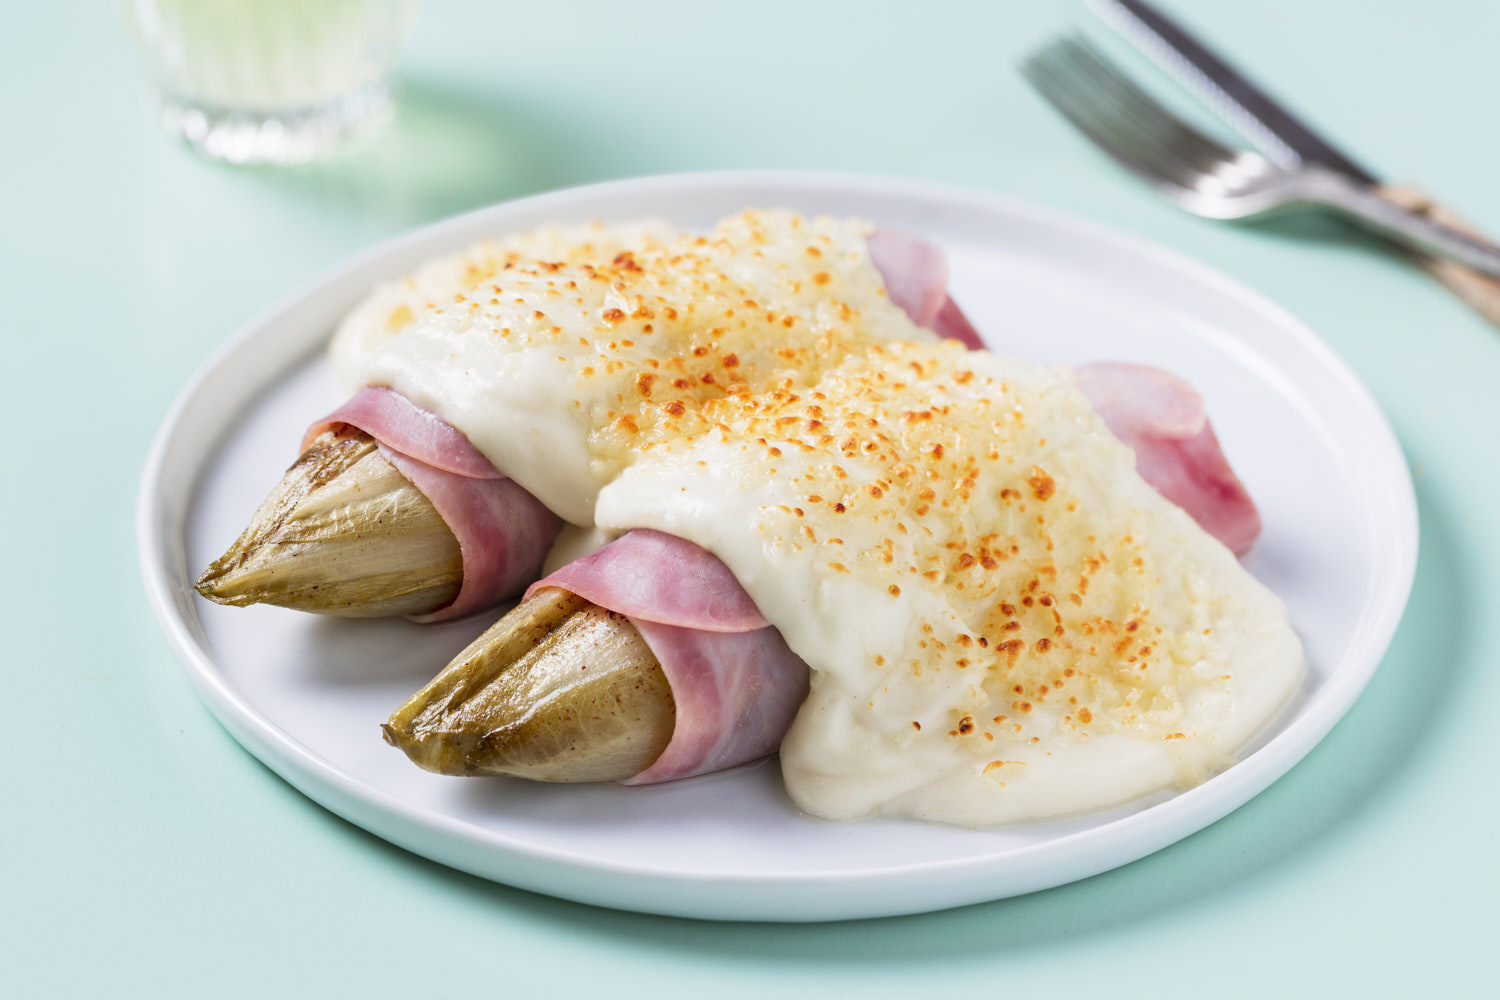 two chicory pieces rolled in ham and covered with bechamel sauce and grilled cheese on a white plate and blue background